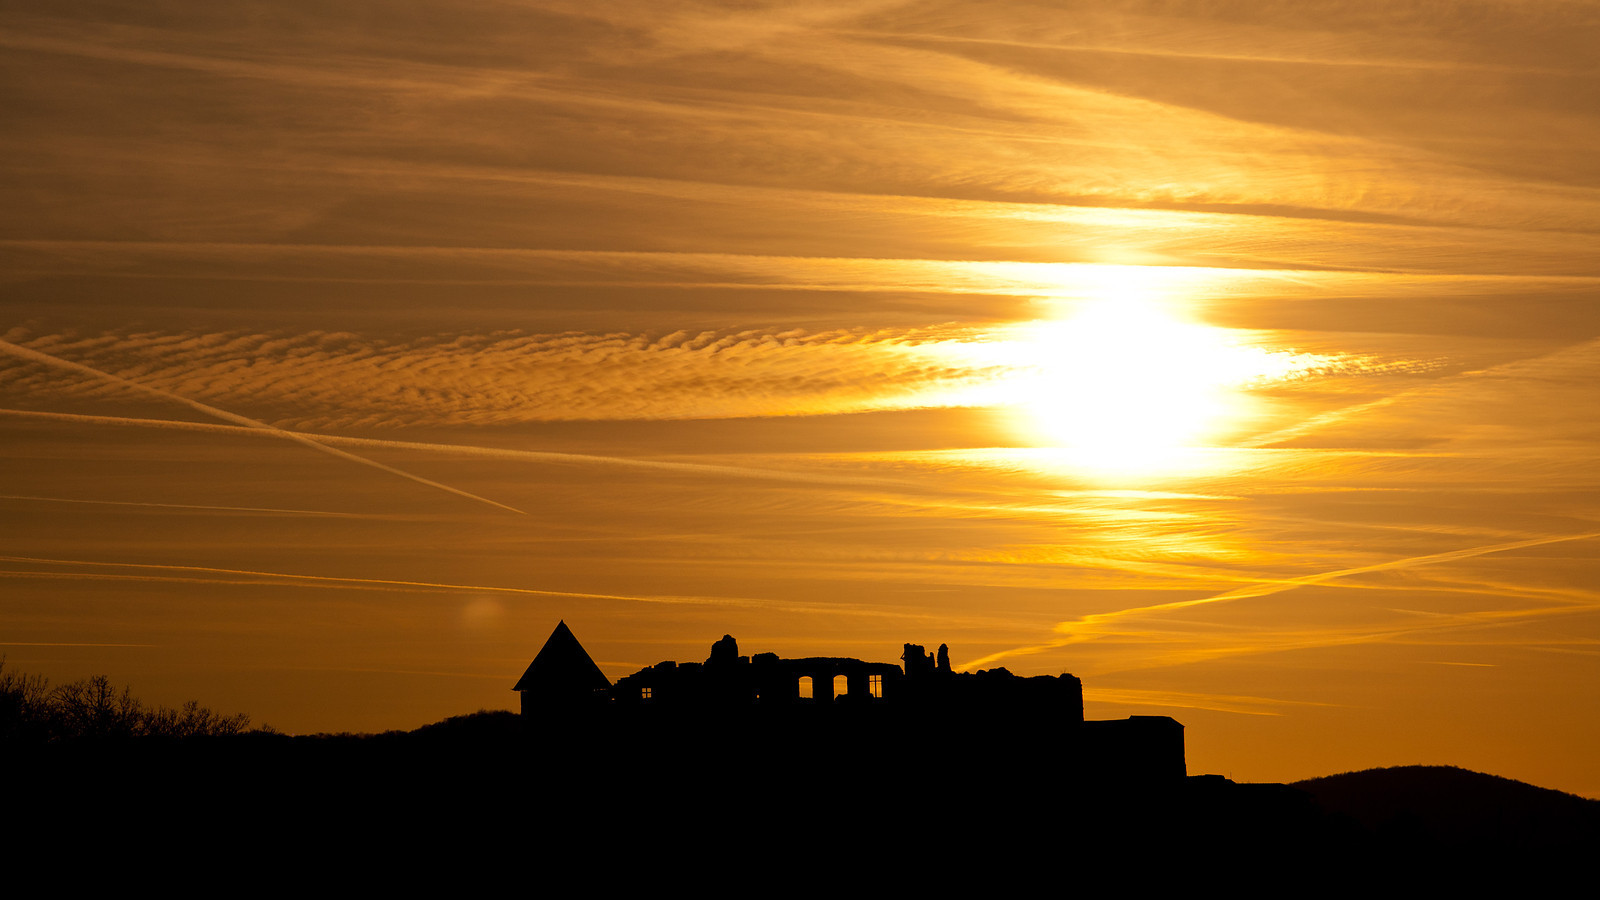 Medieval castle of Visegrád in the sunset